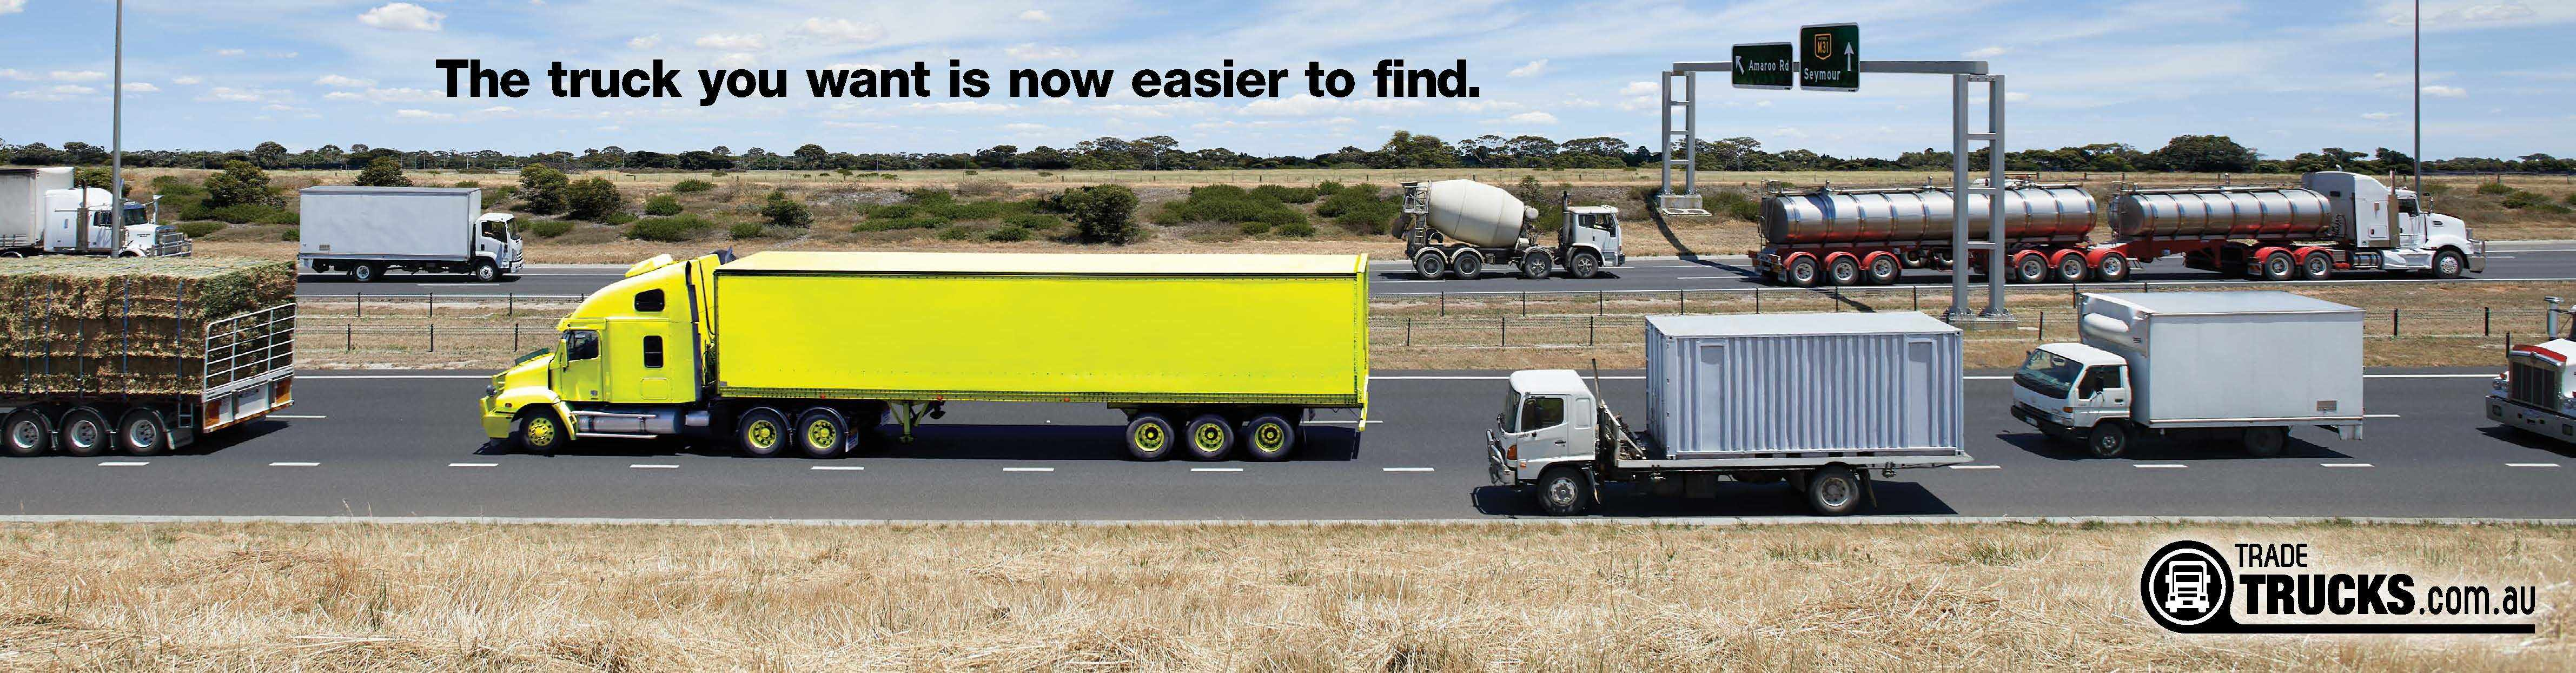 Truck Trader Online | Amazing Wallpapers